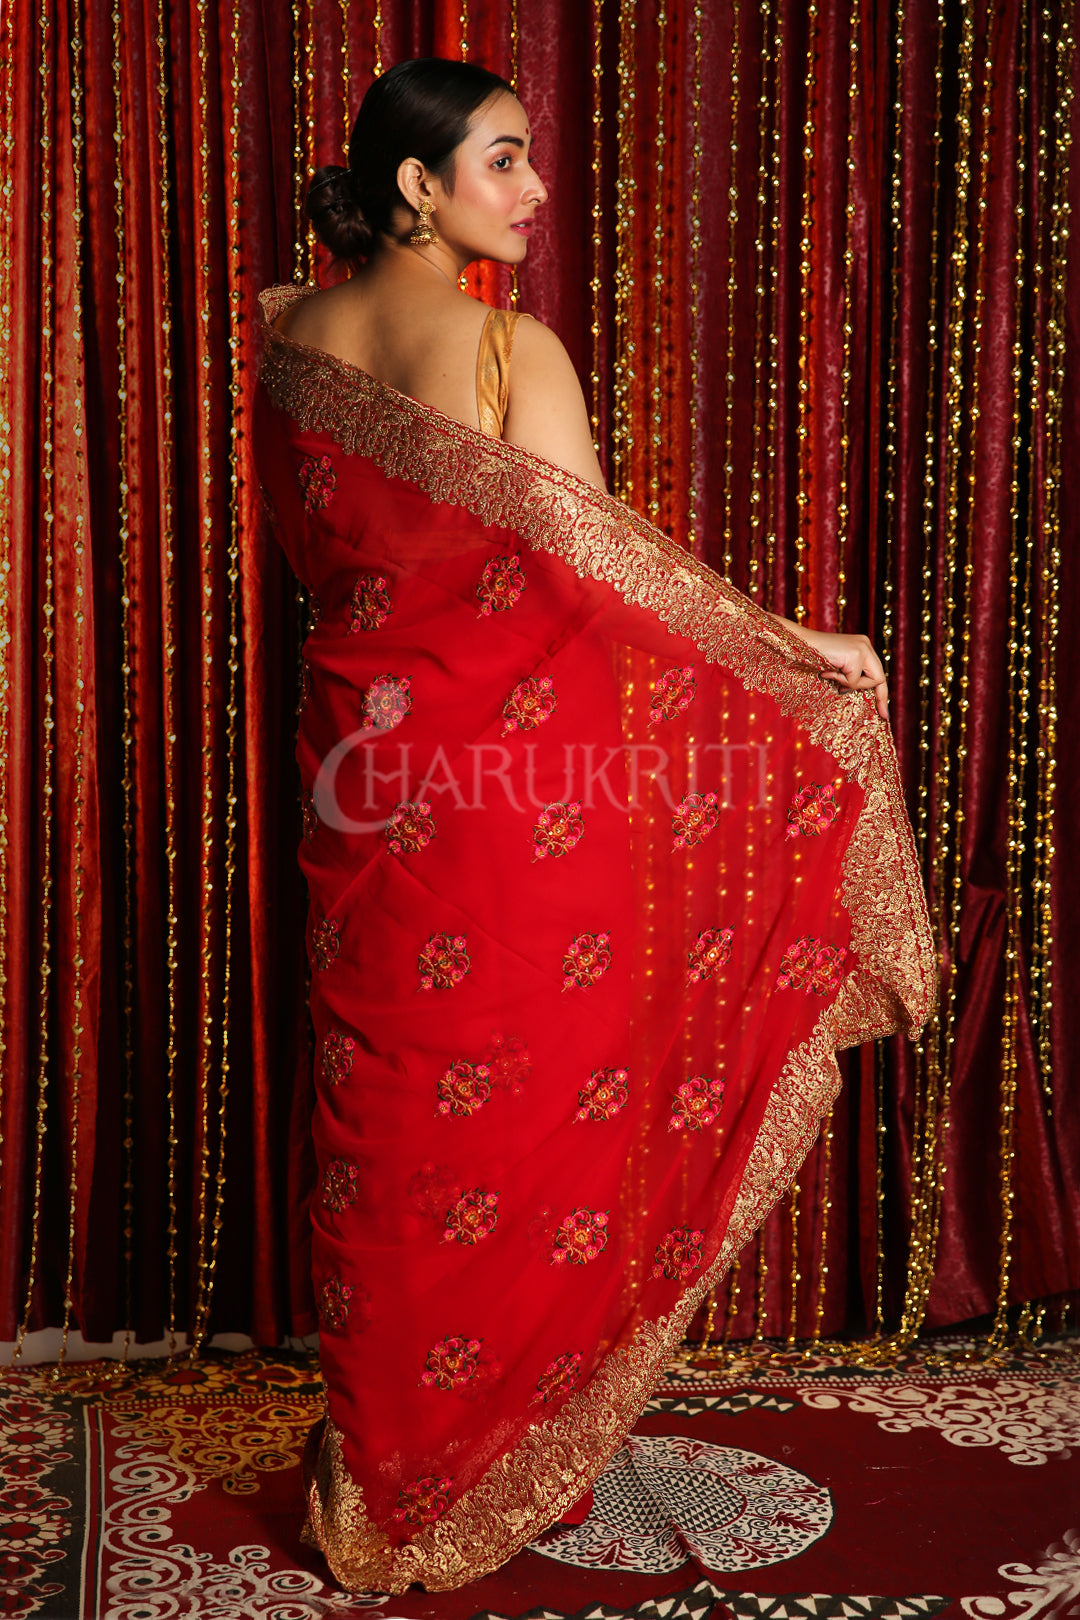 RED CHIFFON SAREE WITH FLORAL JARDOSI WORK